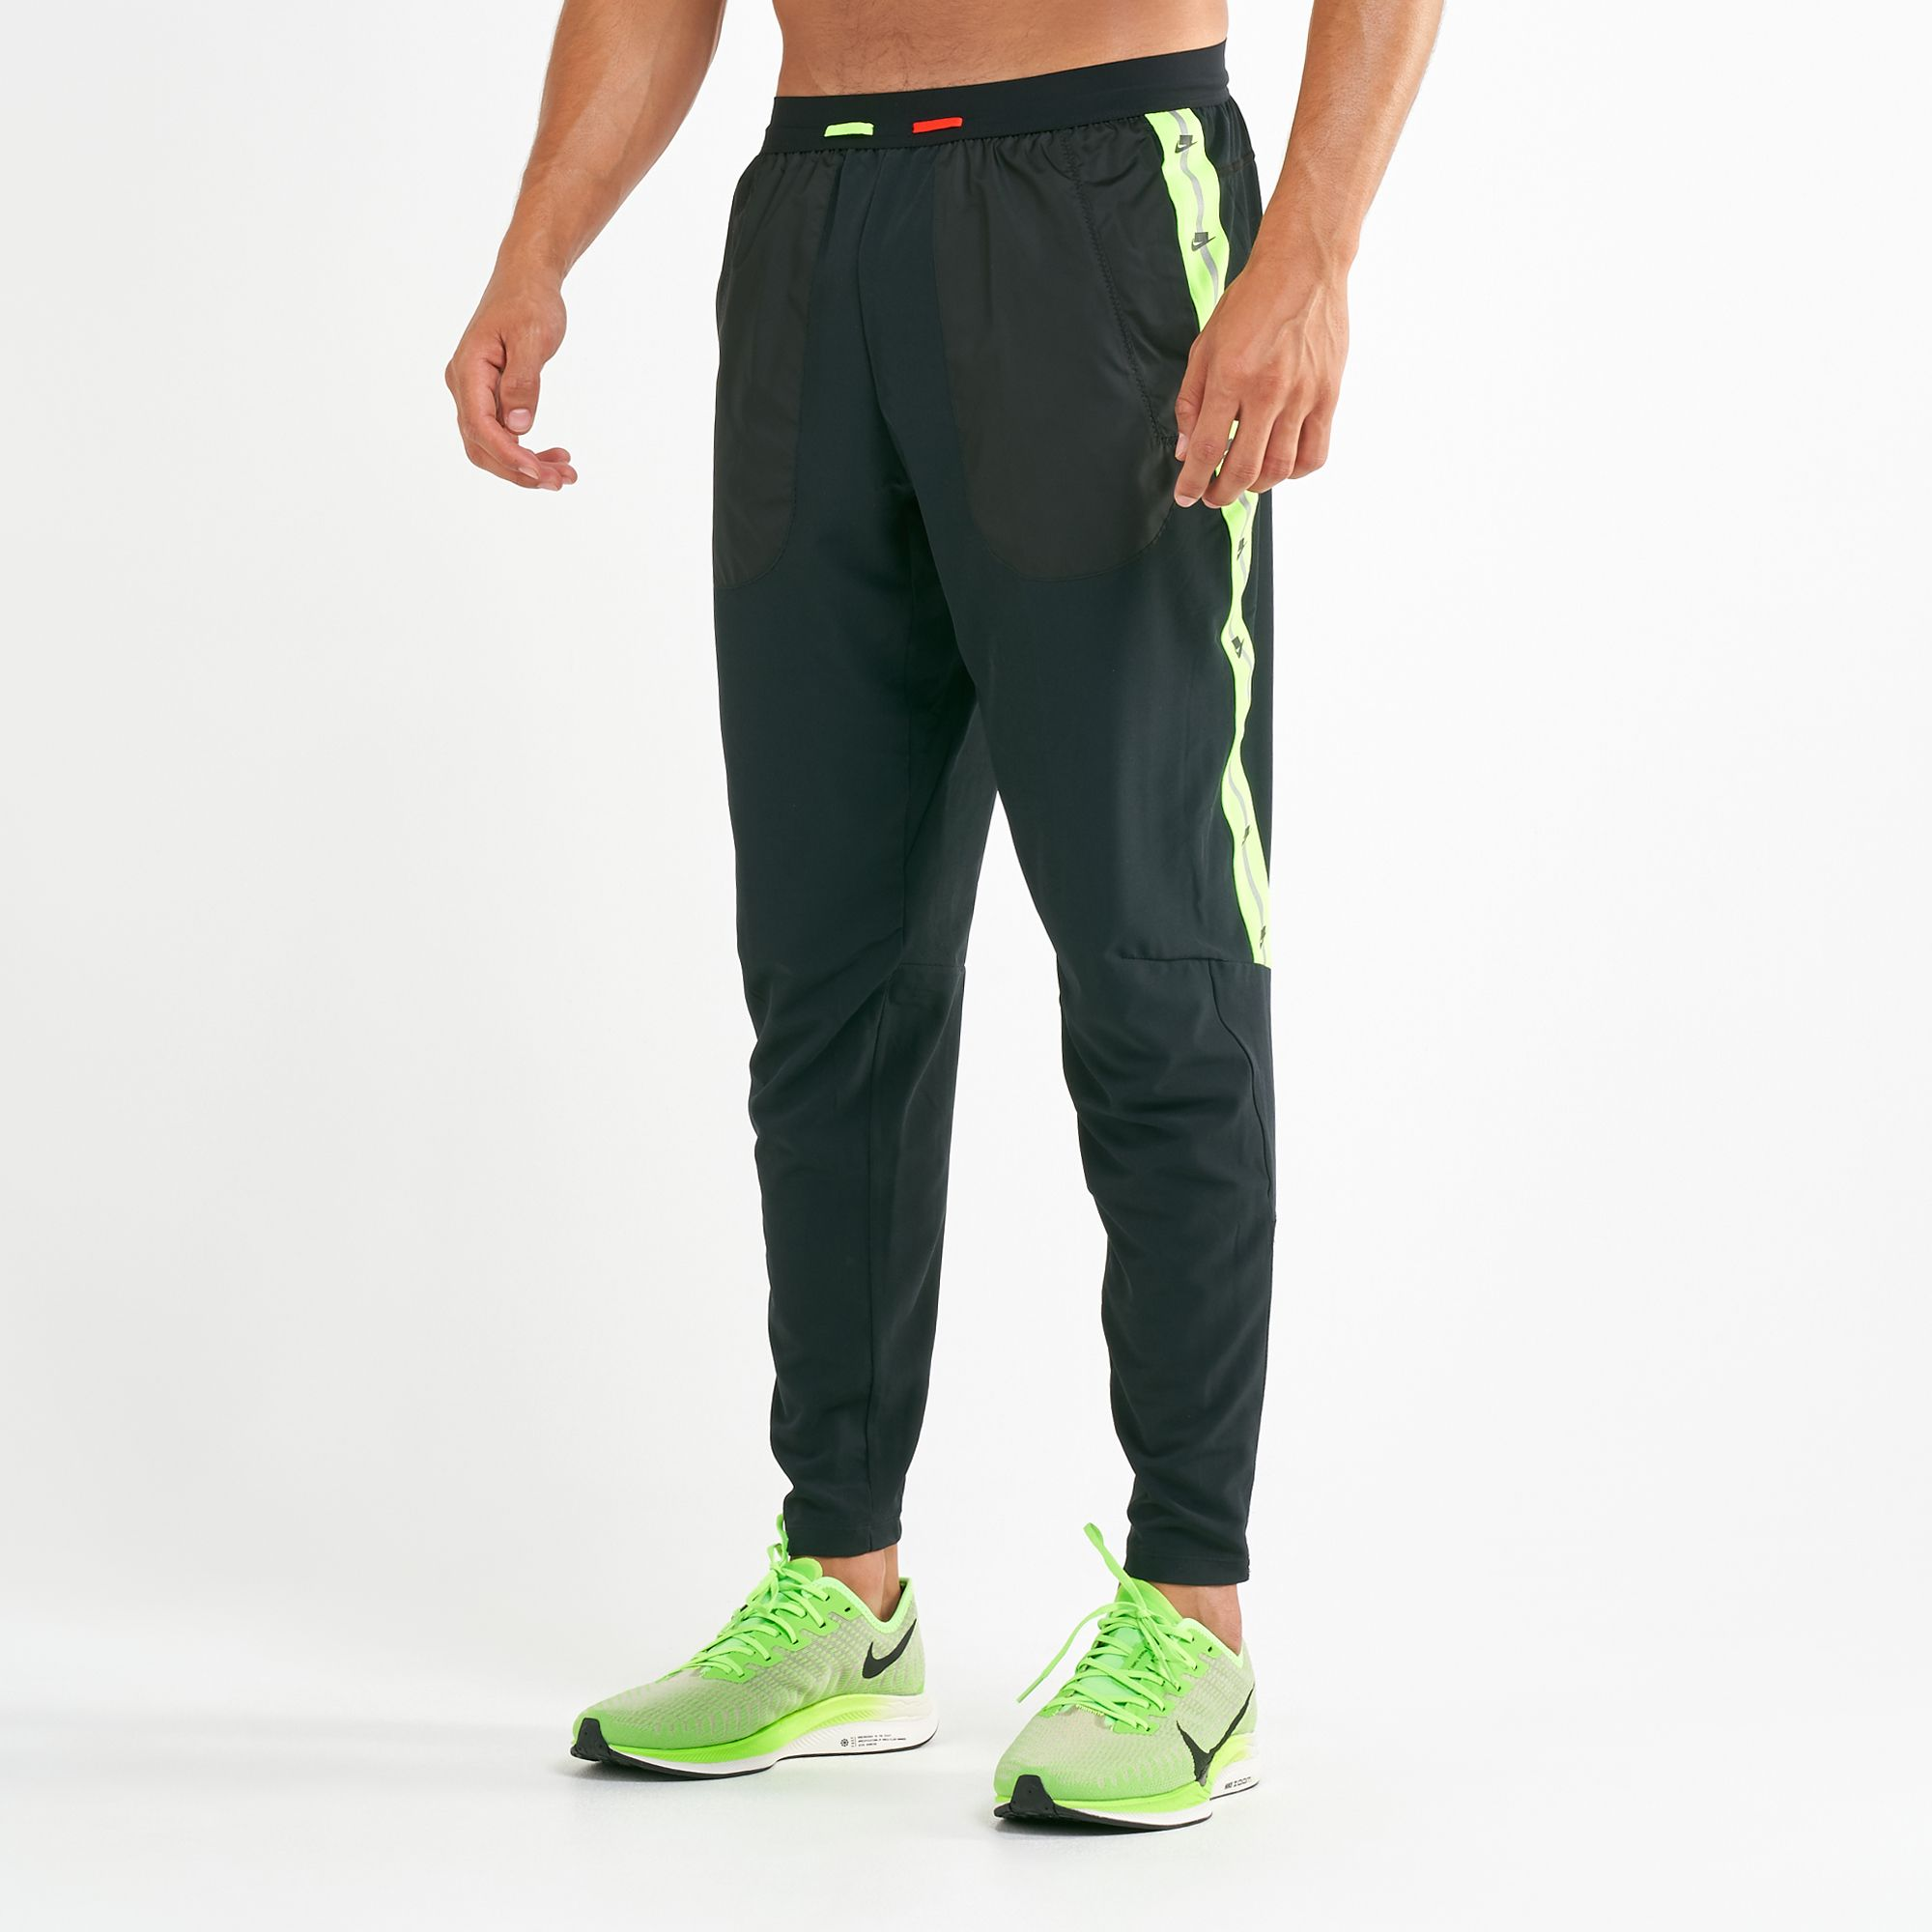 Nike Men's Phenom Wild Run Running Pants